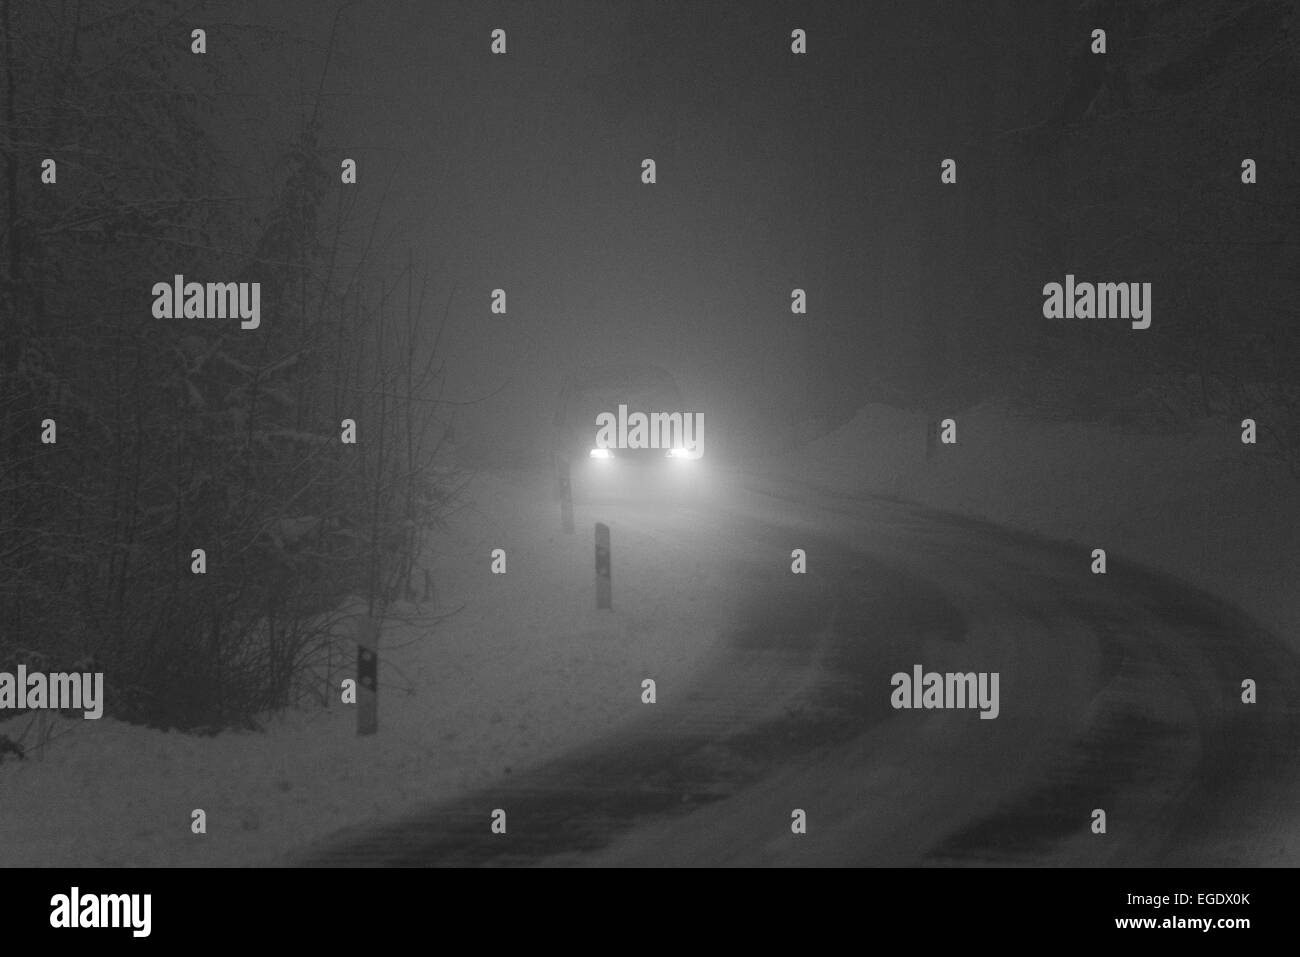 a car driving through the darkness in a foggy & snowy environment - Stock Image